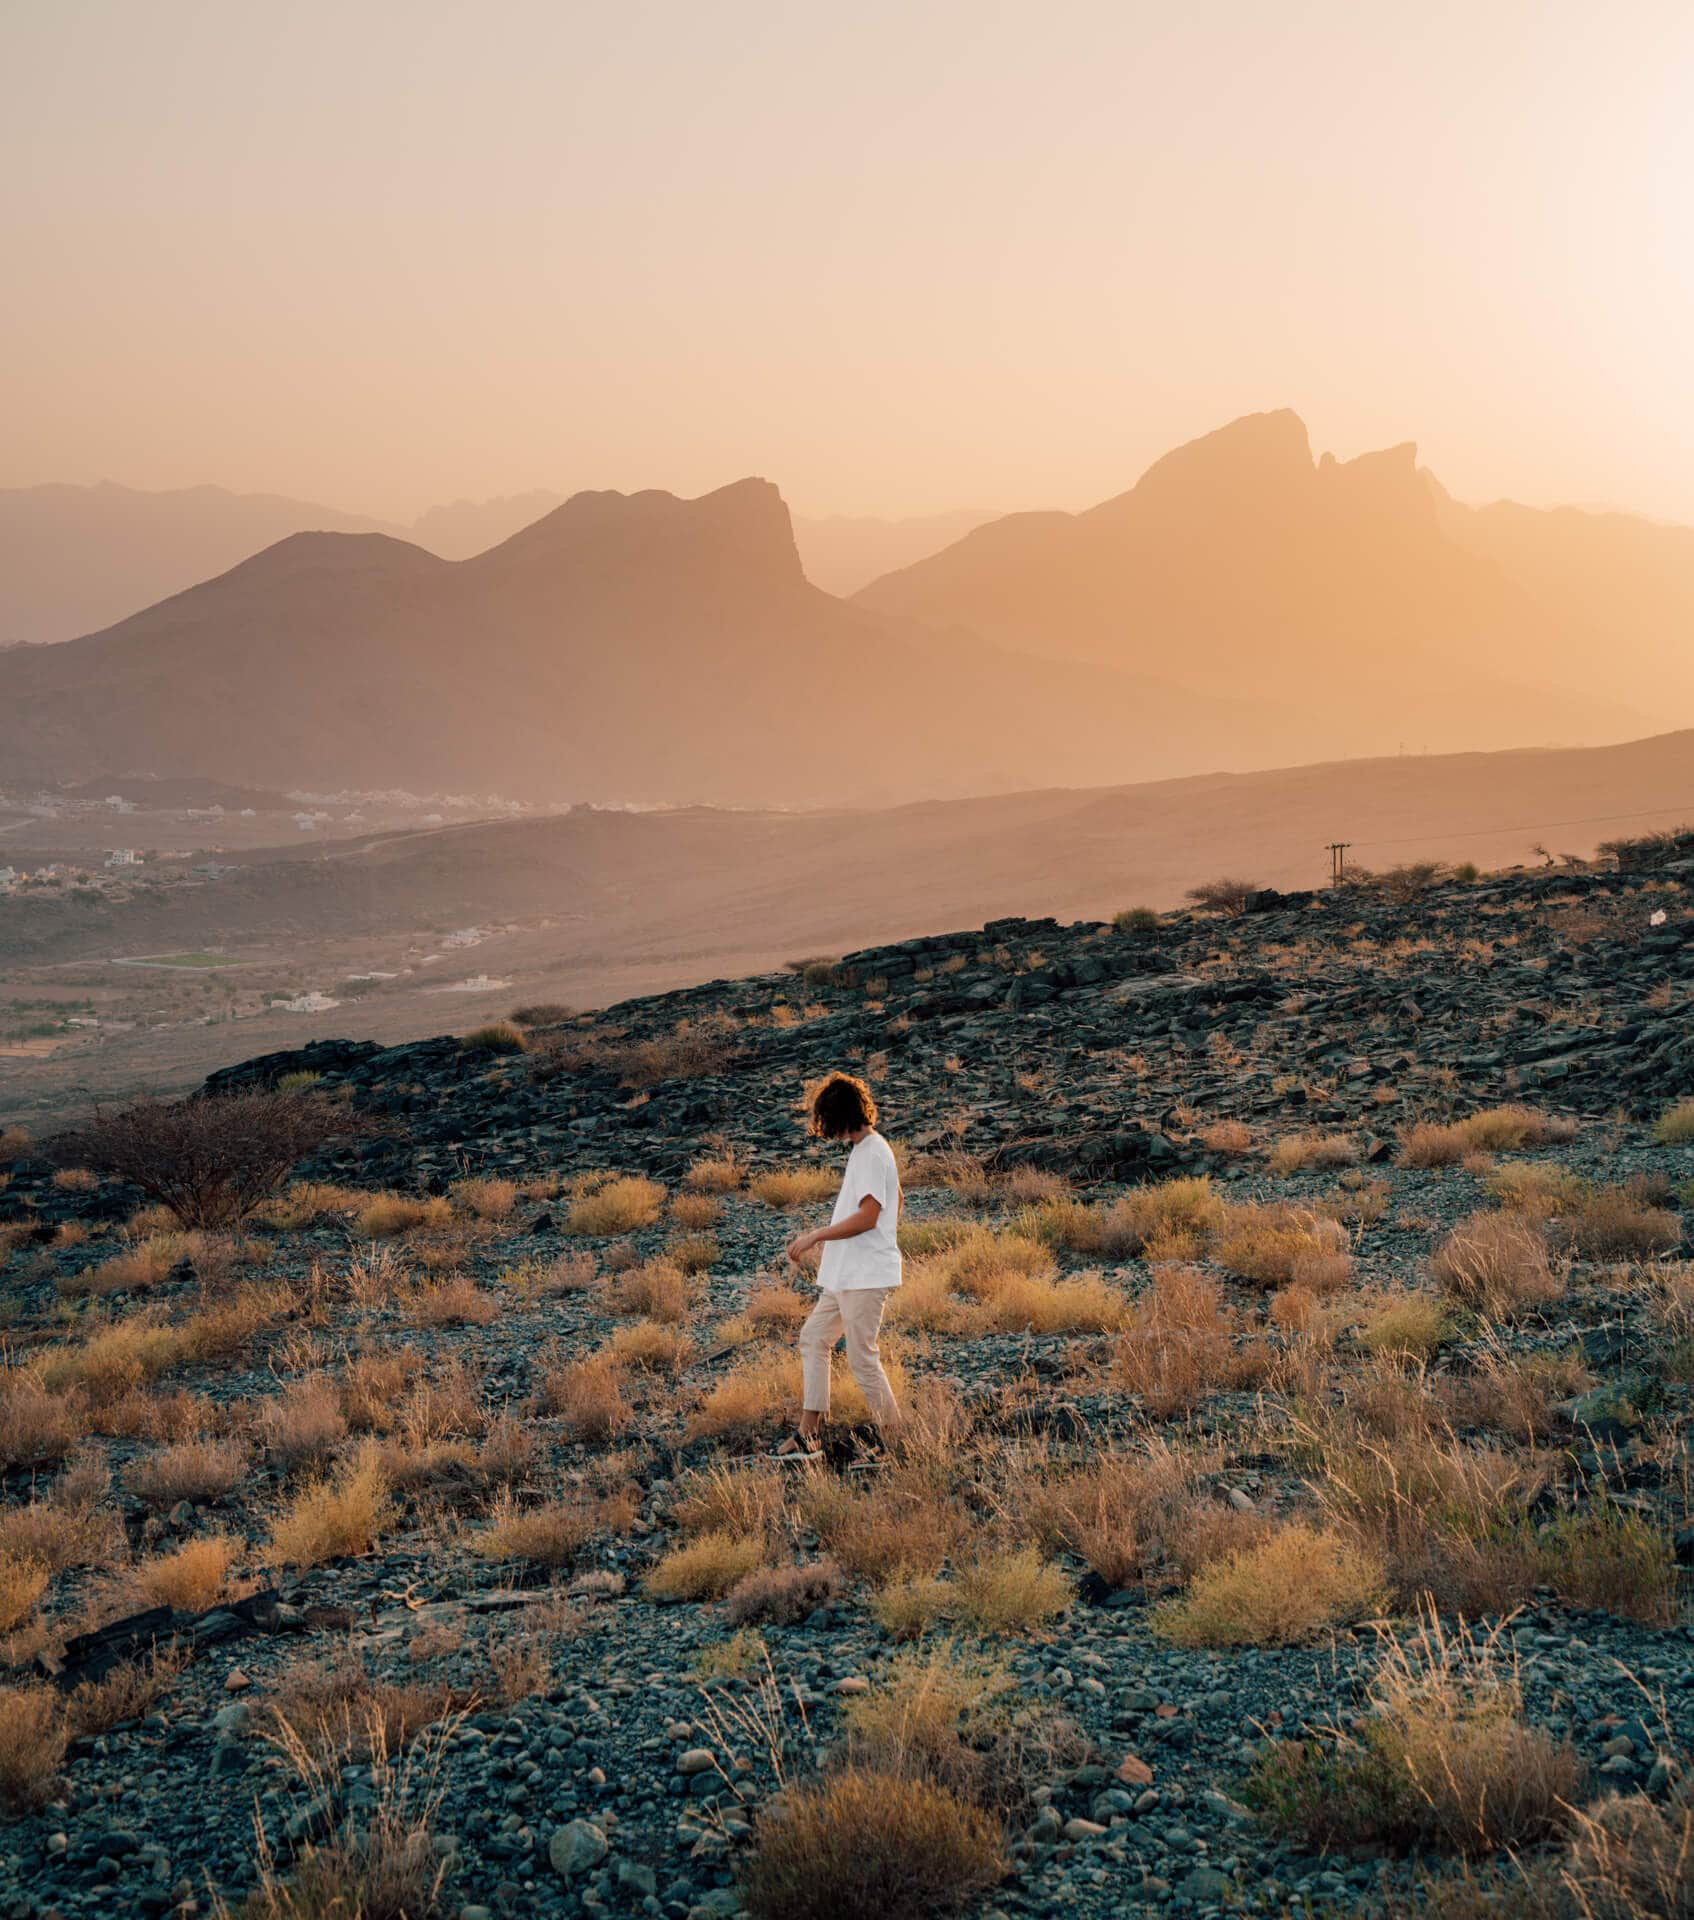 things to do in oman mountains misfah